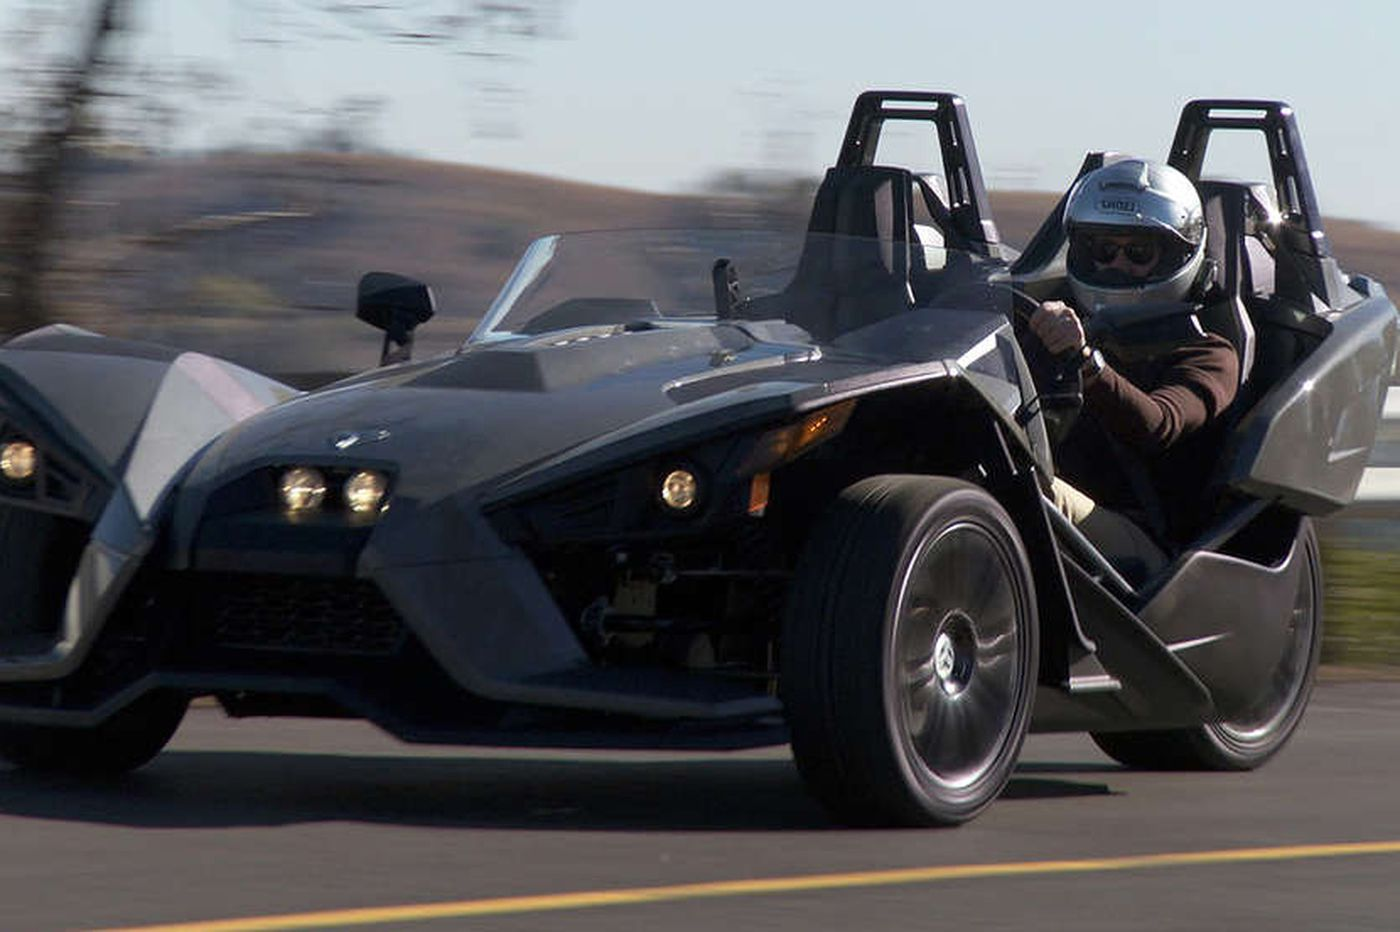 3 Wheeled Motorcycles Get An Upgrade